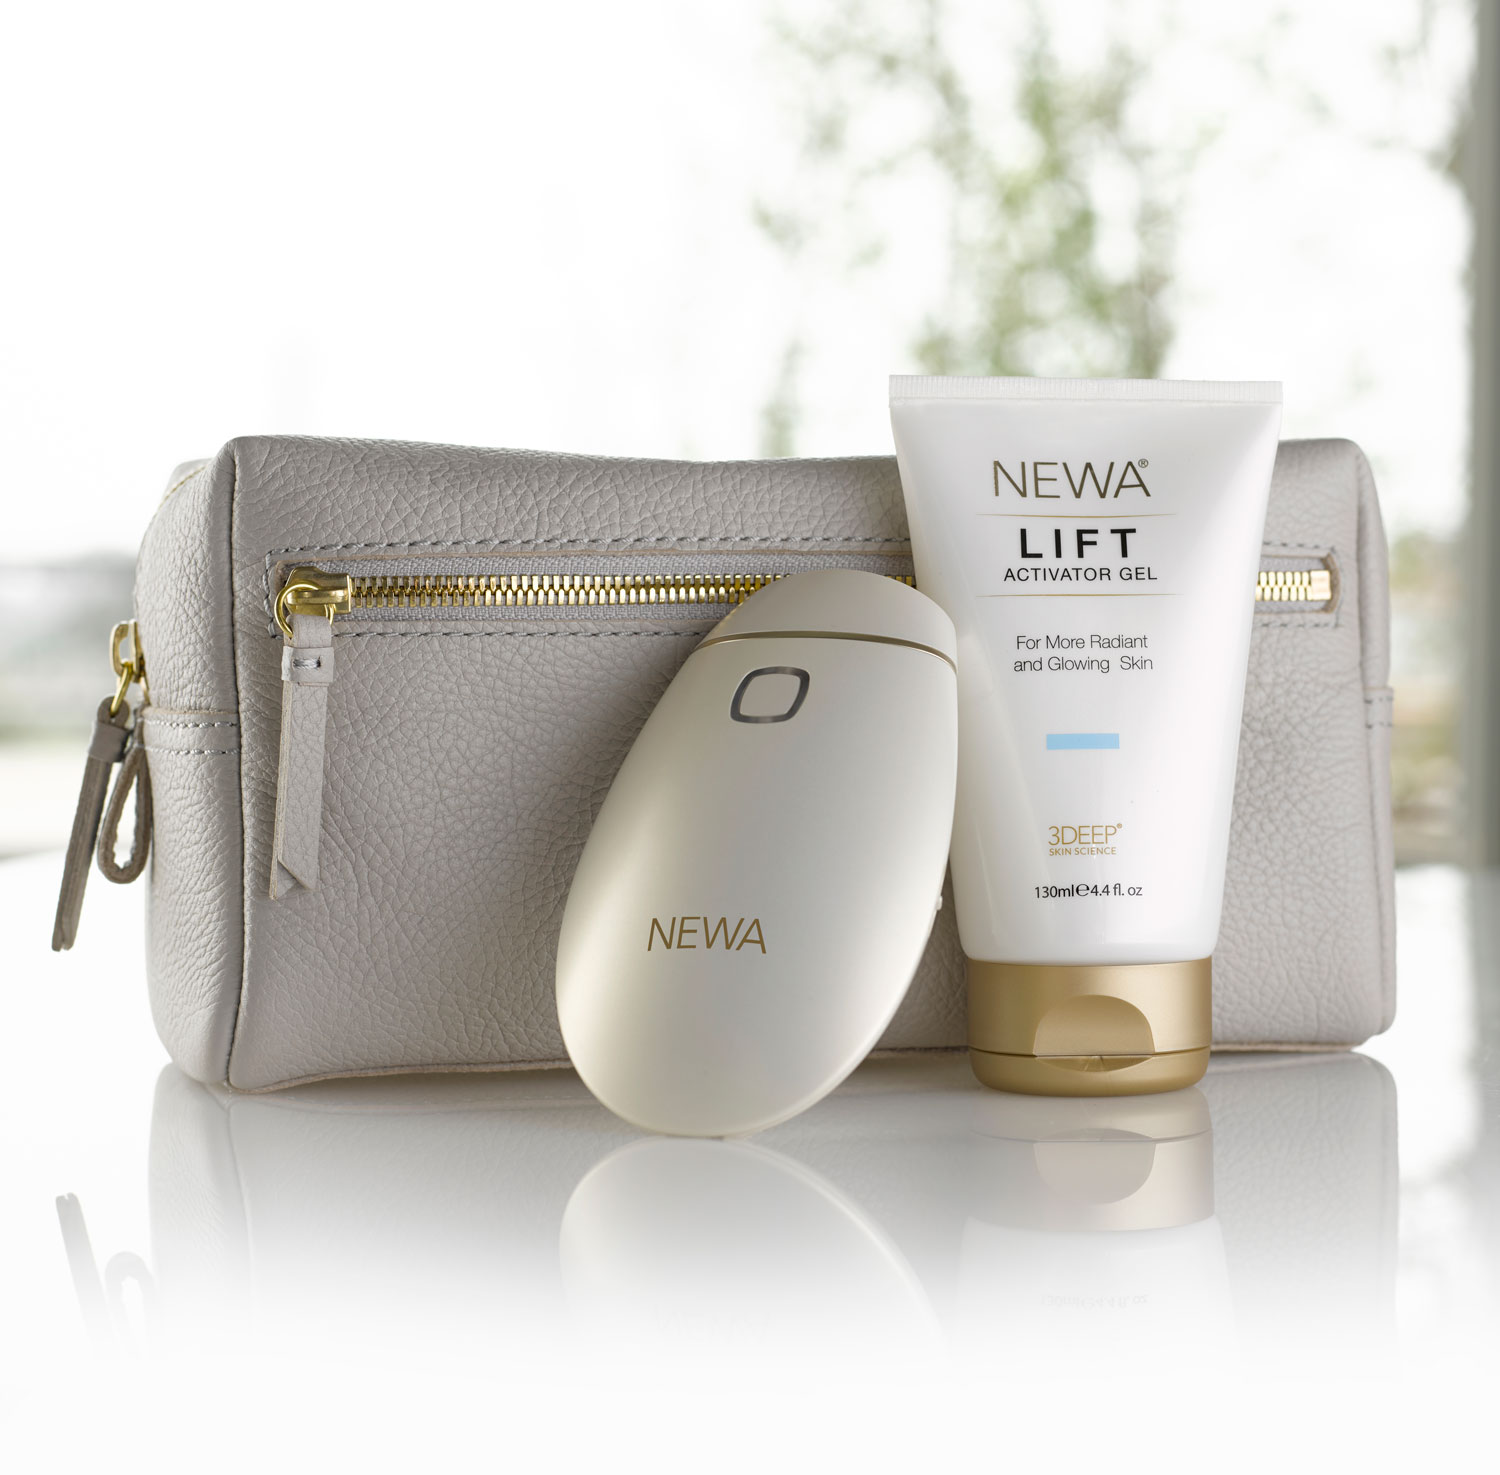 NEWA skin rejuvenating system mother's day gift ideas